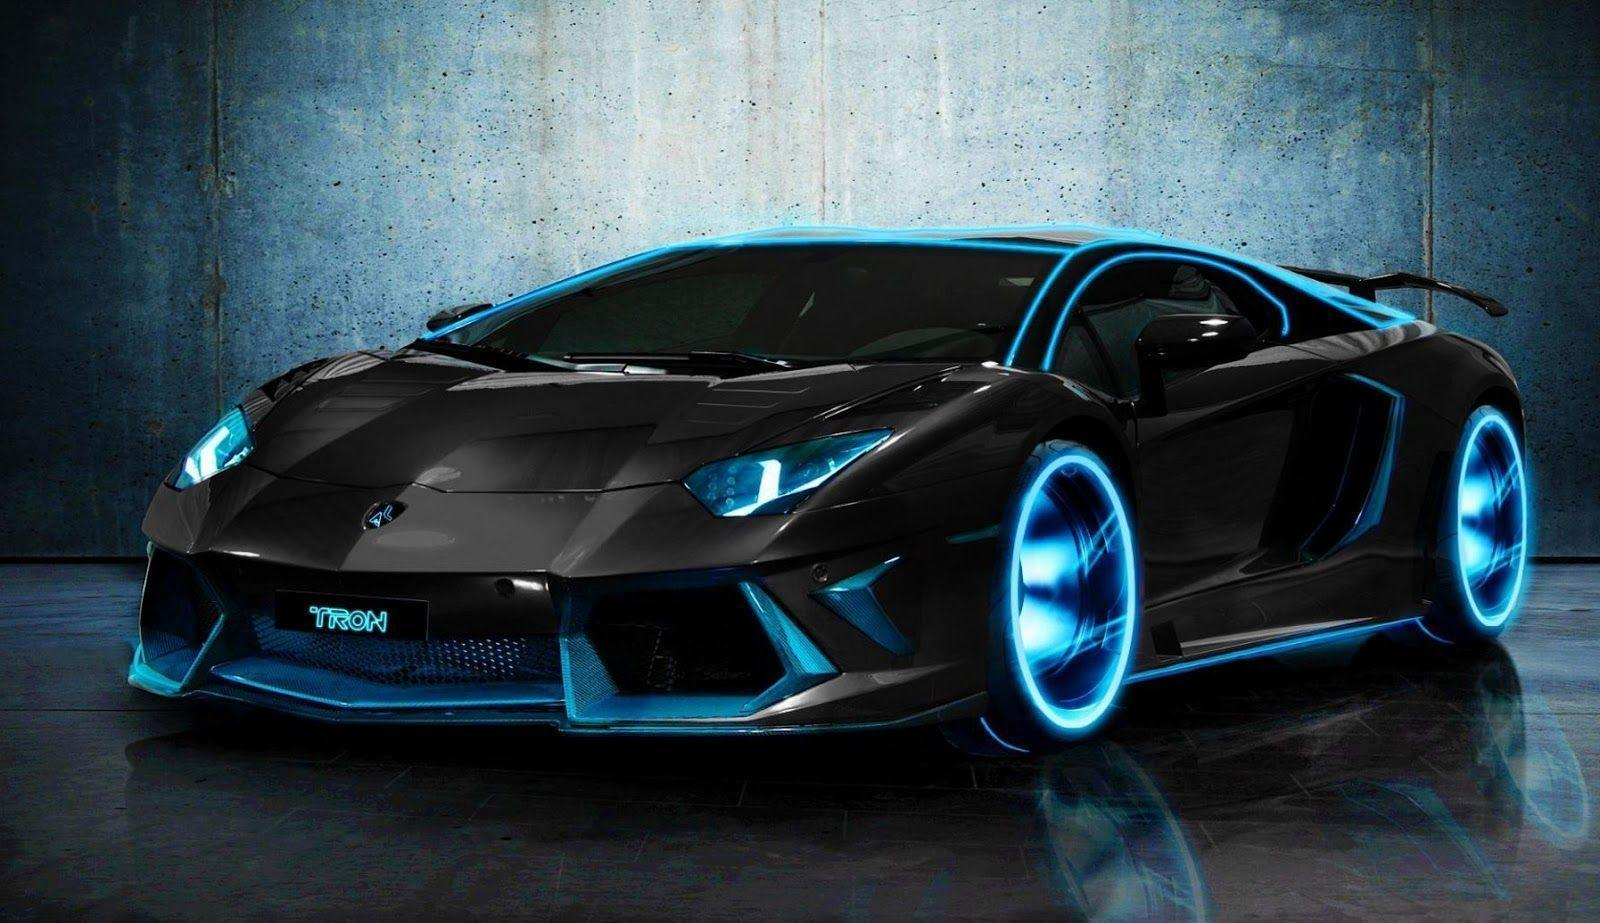 Download free Hot and Awsum Blue Sports Car Wallpaper 2015 | Masti ...